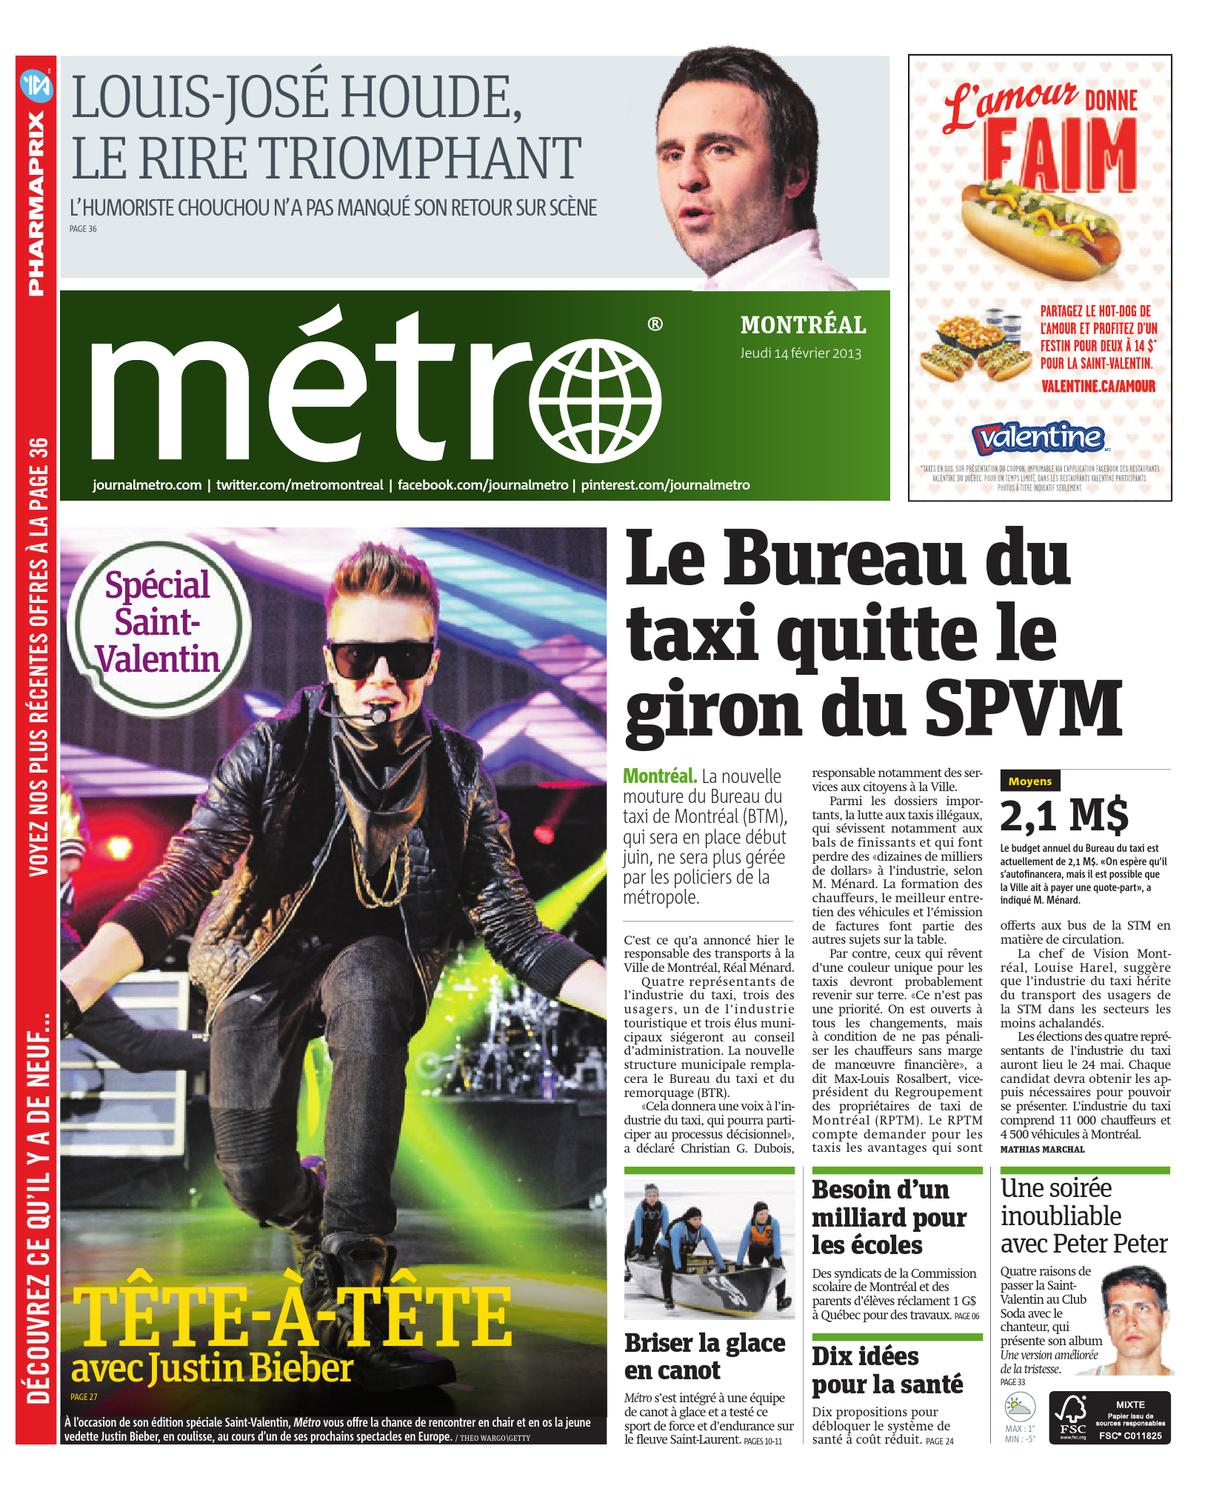 0501a651648246 20130214 ca montreal by Metro Canada - issuu